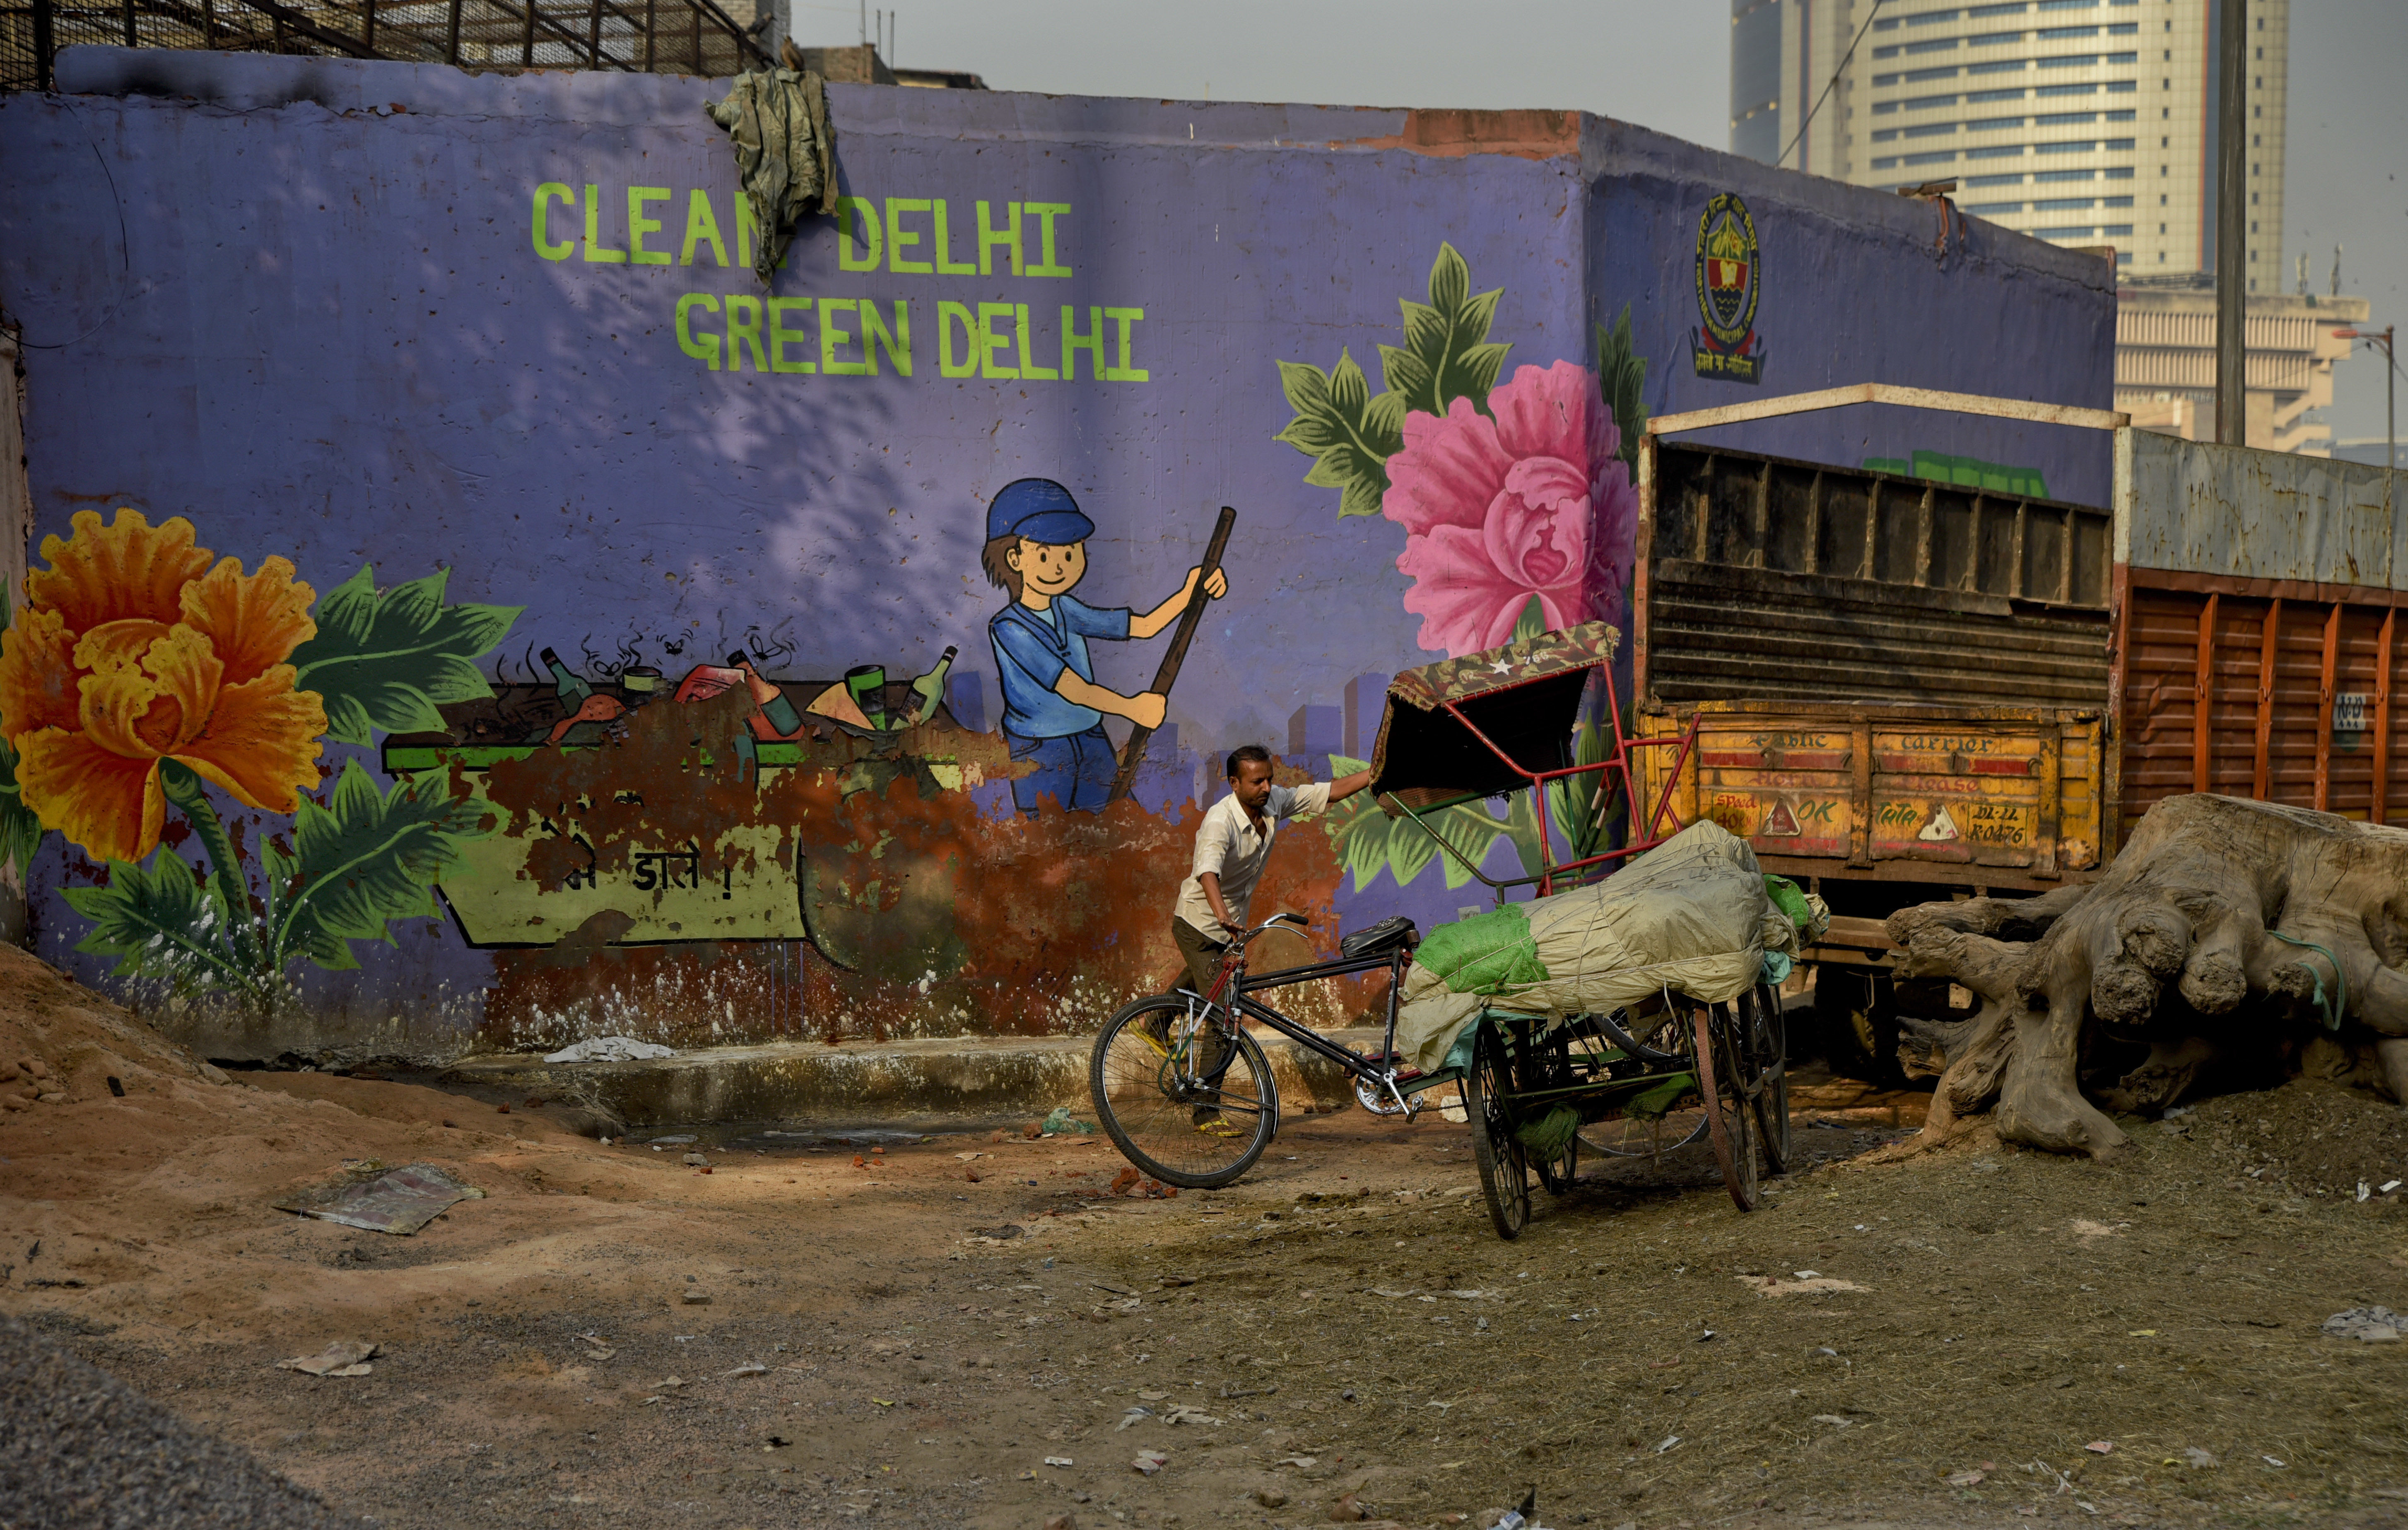 An Indian cycle rickshaw puller maneuvers his rickshaw past an awareness mural campaigning for a clean and green Delhi in New Delhi, India - AP